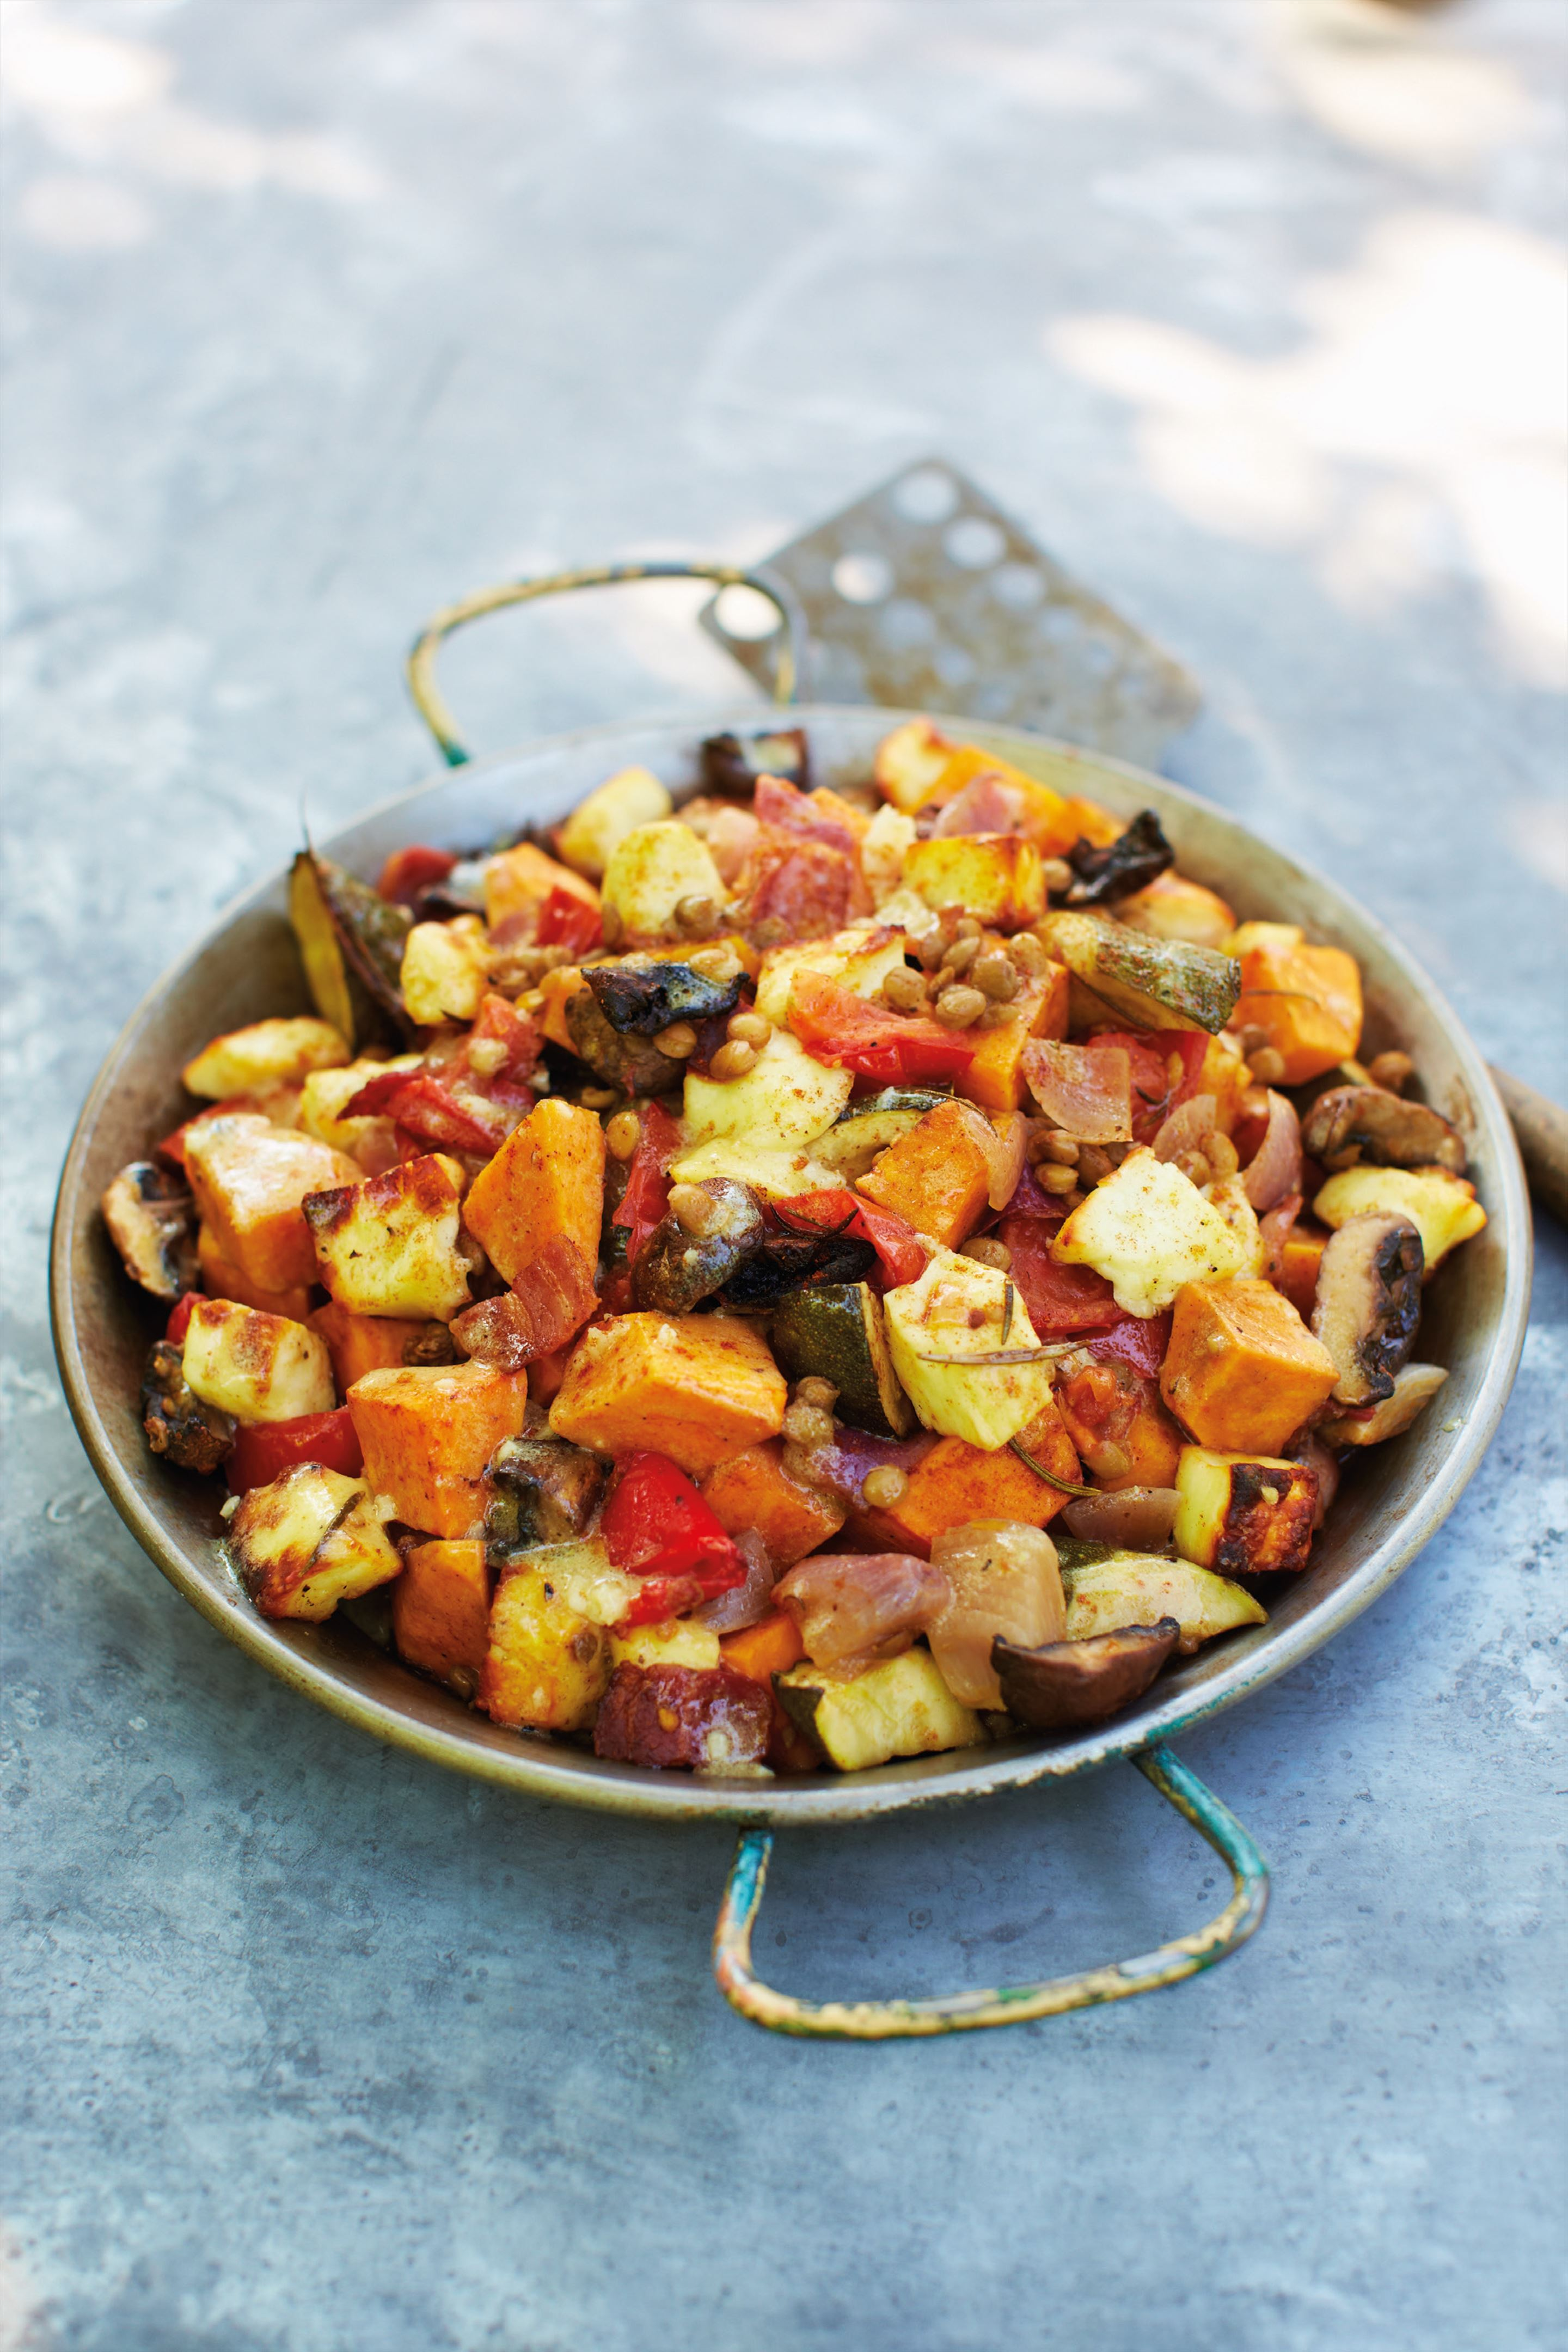 Mark's moreish roasted vegetable, lentil and halloumi salad with bacon rashers